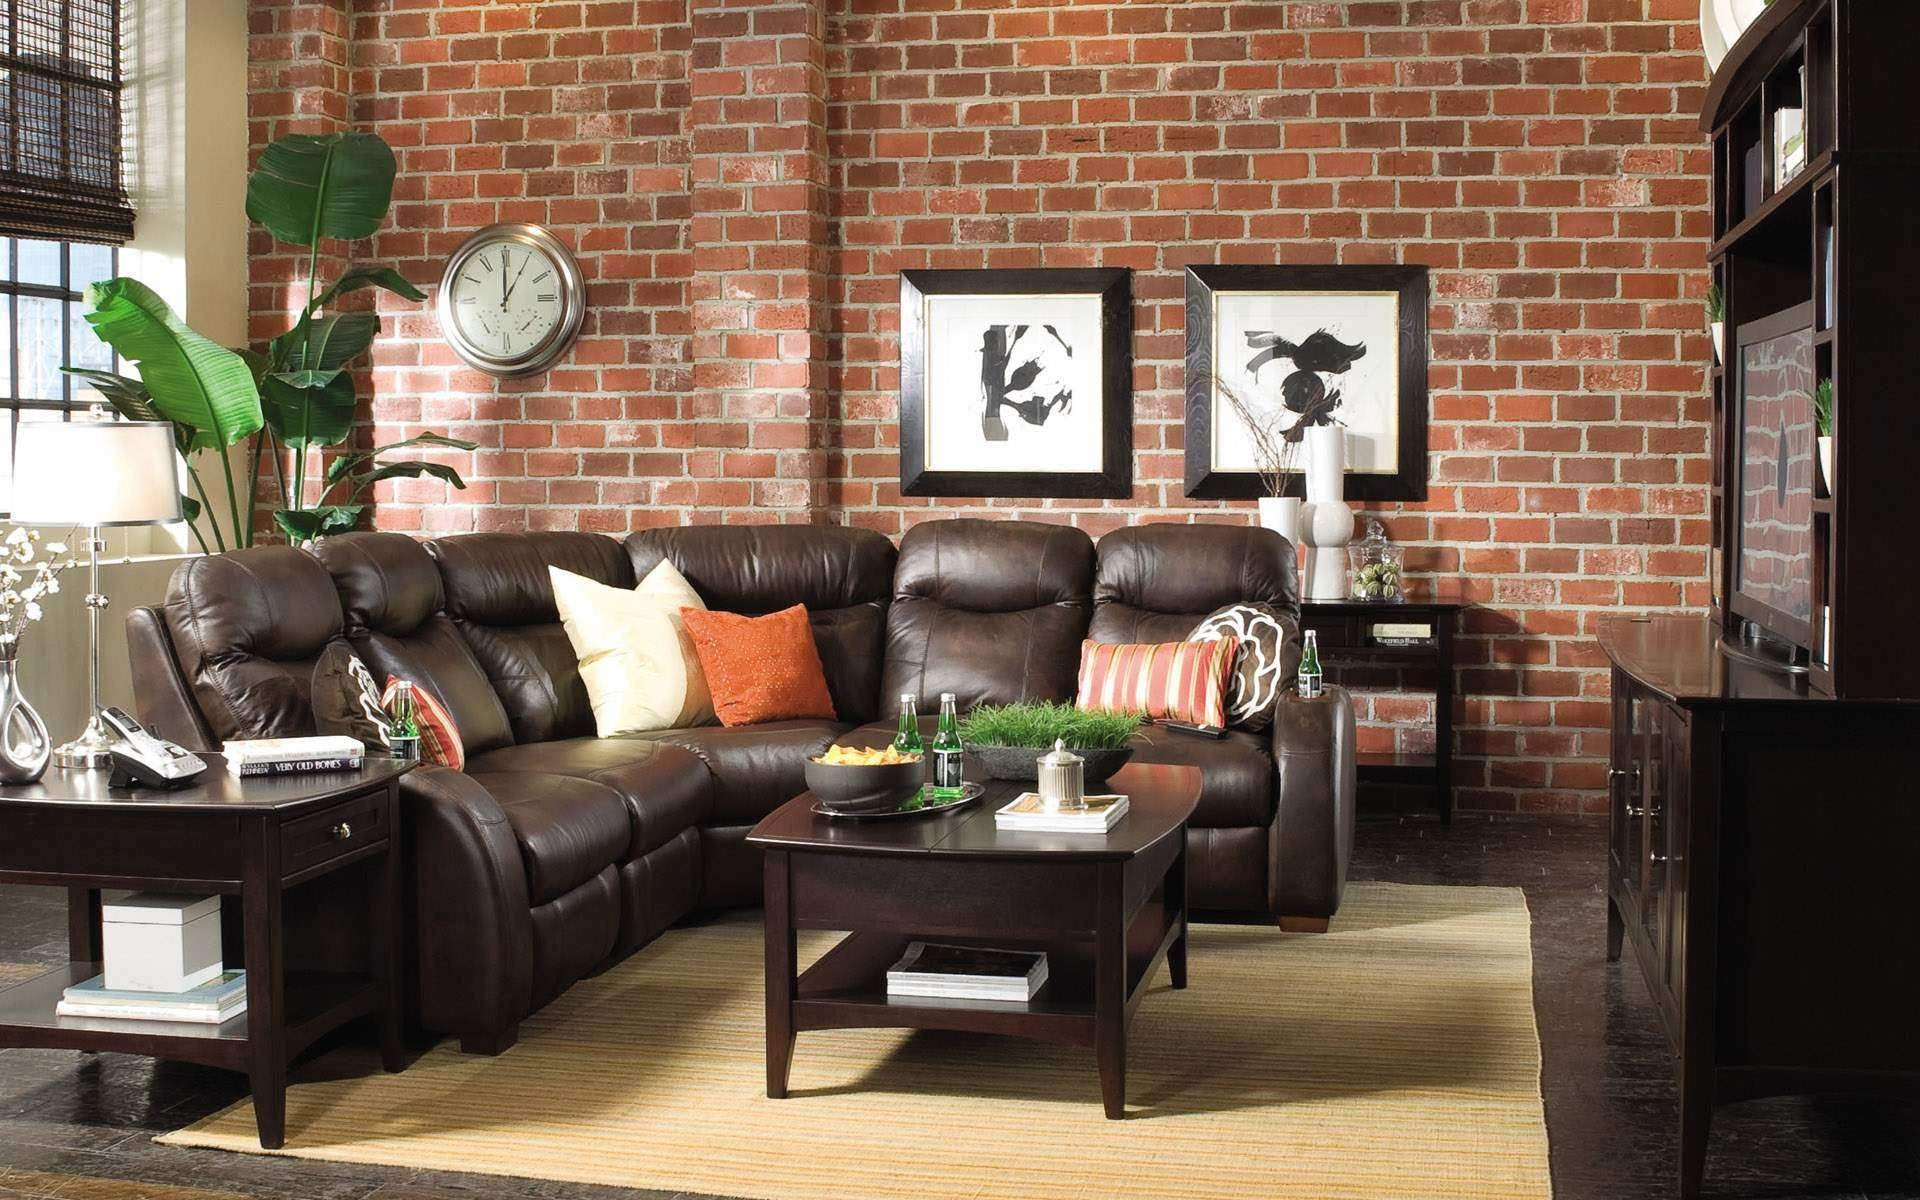 amazing-exposed-brick-wall-with-black-for-living-room-decoration-two-classic-black-wooden-framed-photos-artificial-plants-rounded-clock-on-the-exposed-bric